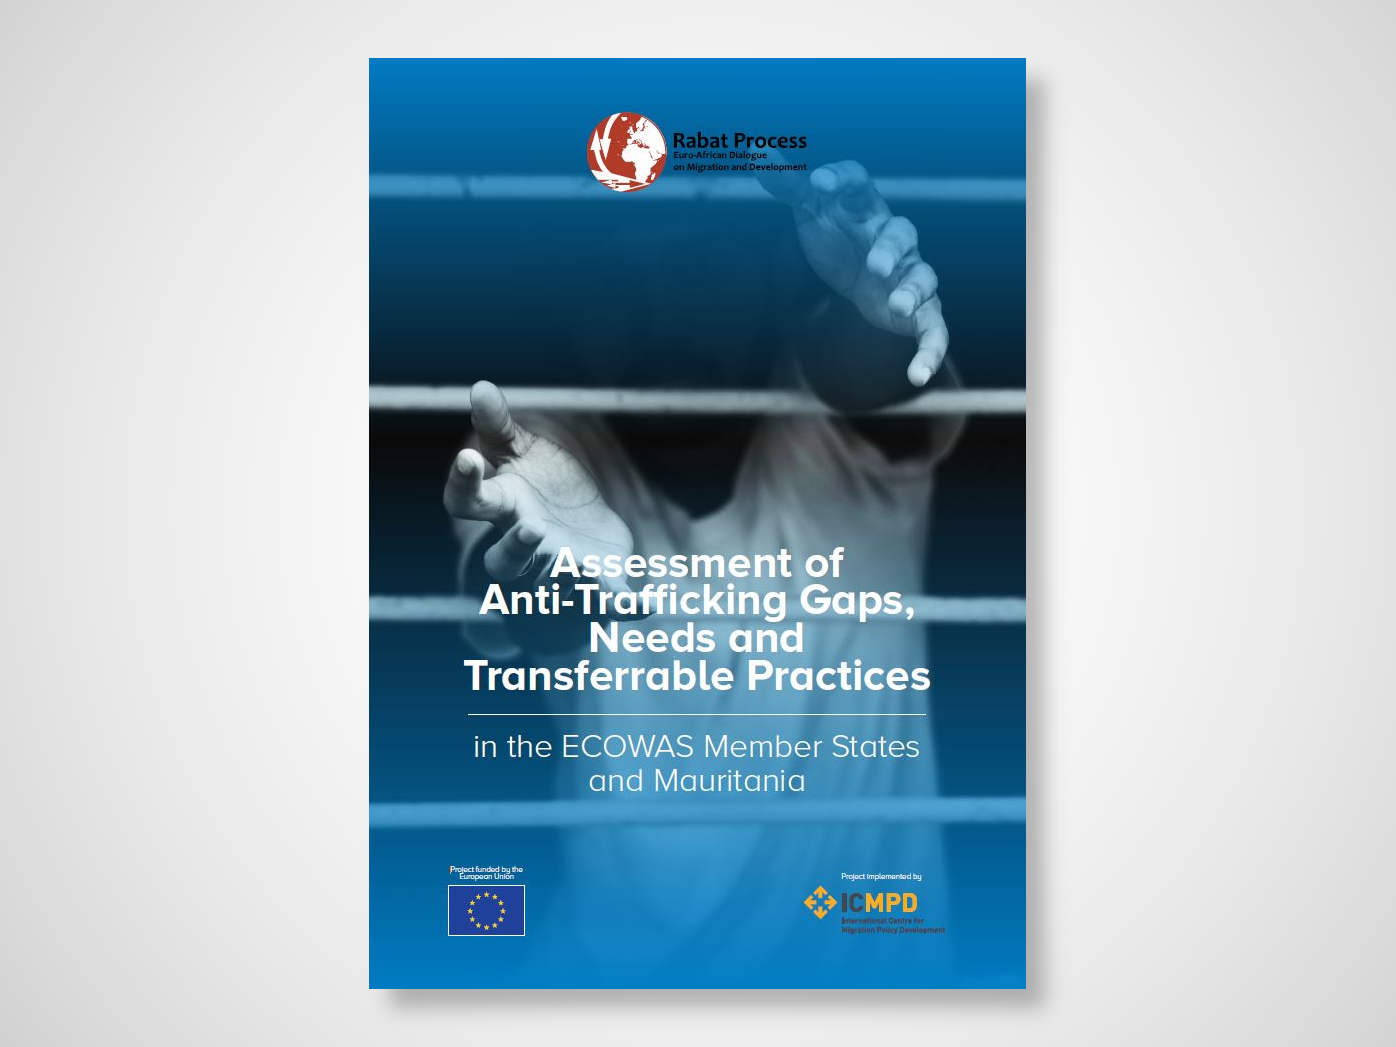 Anti-Trafficking Assessment: Gaps, Needs and Transferrable Practices